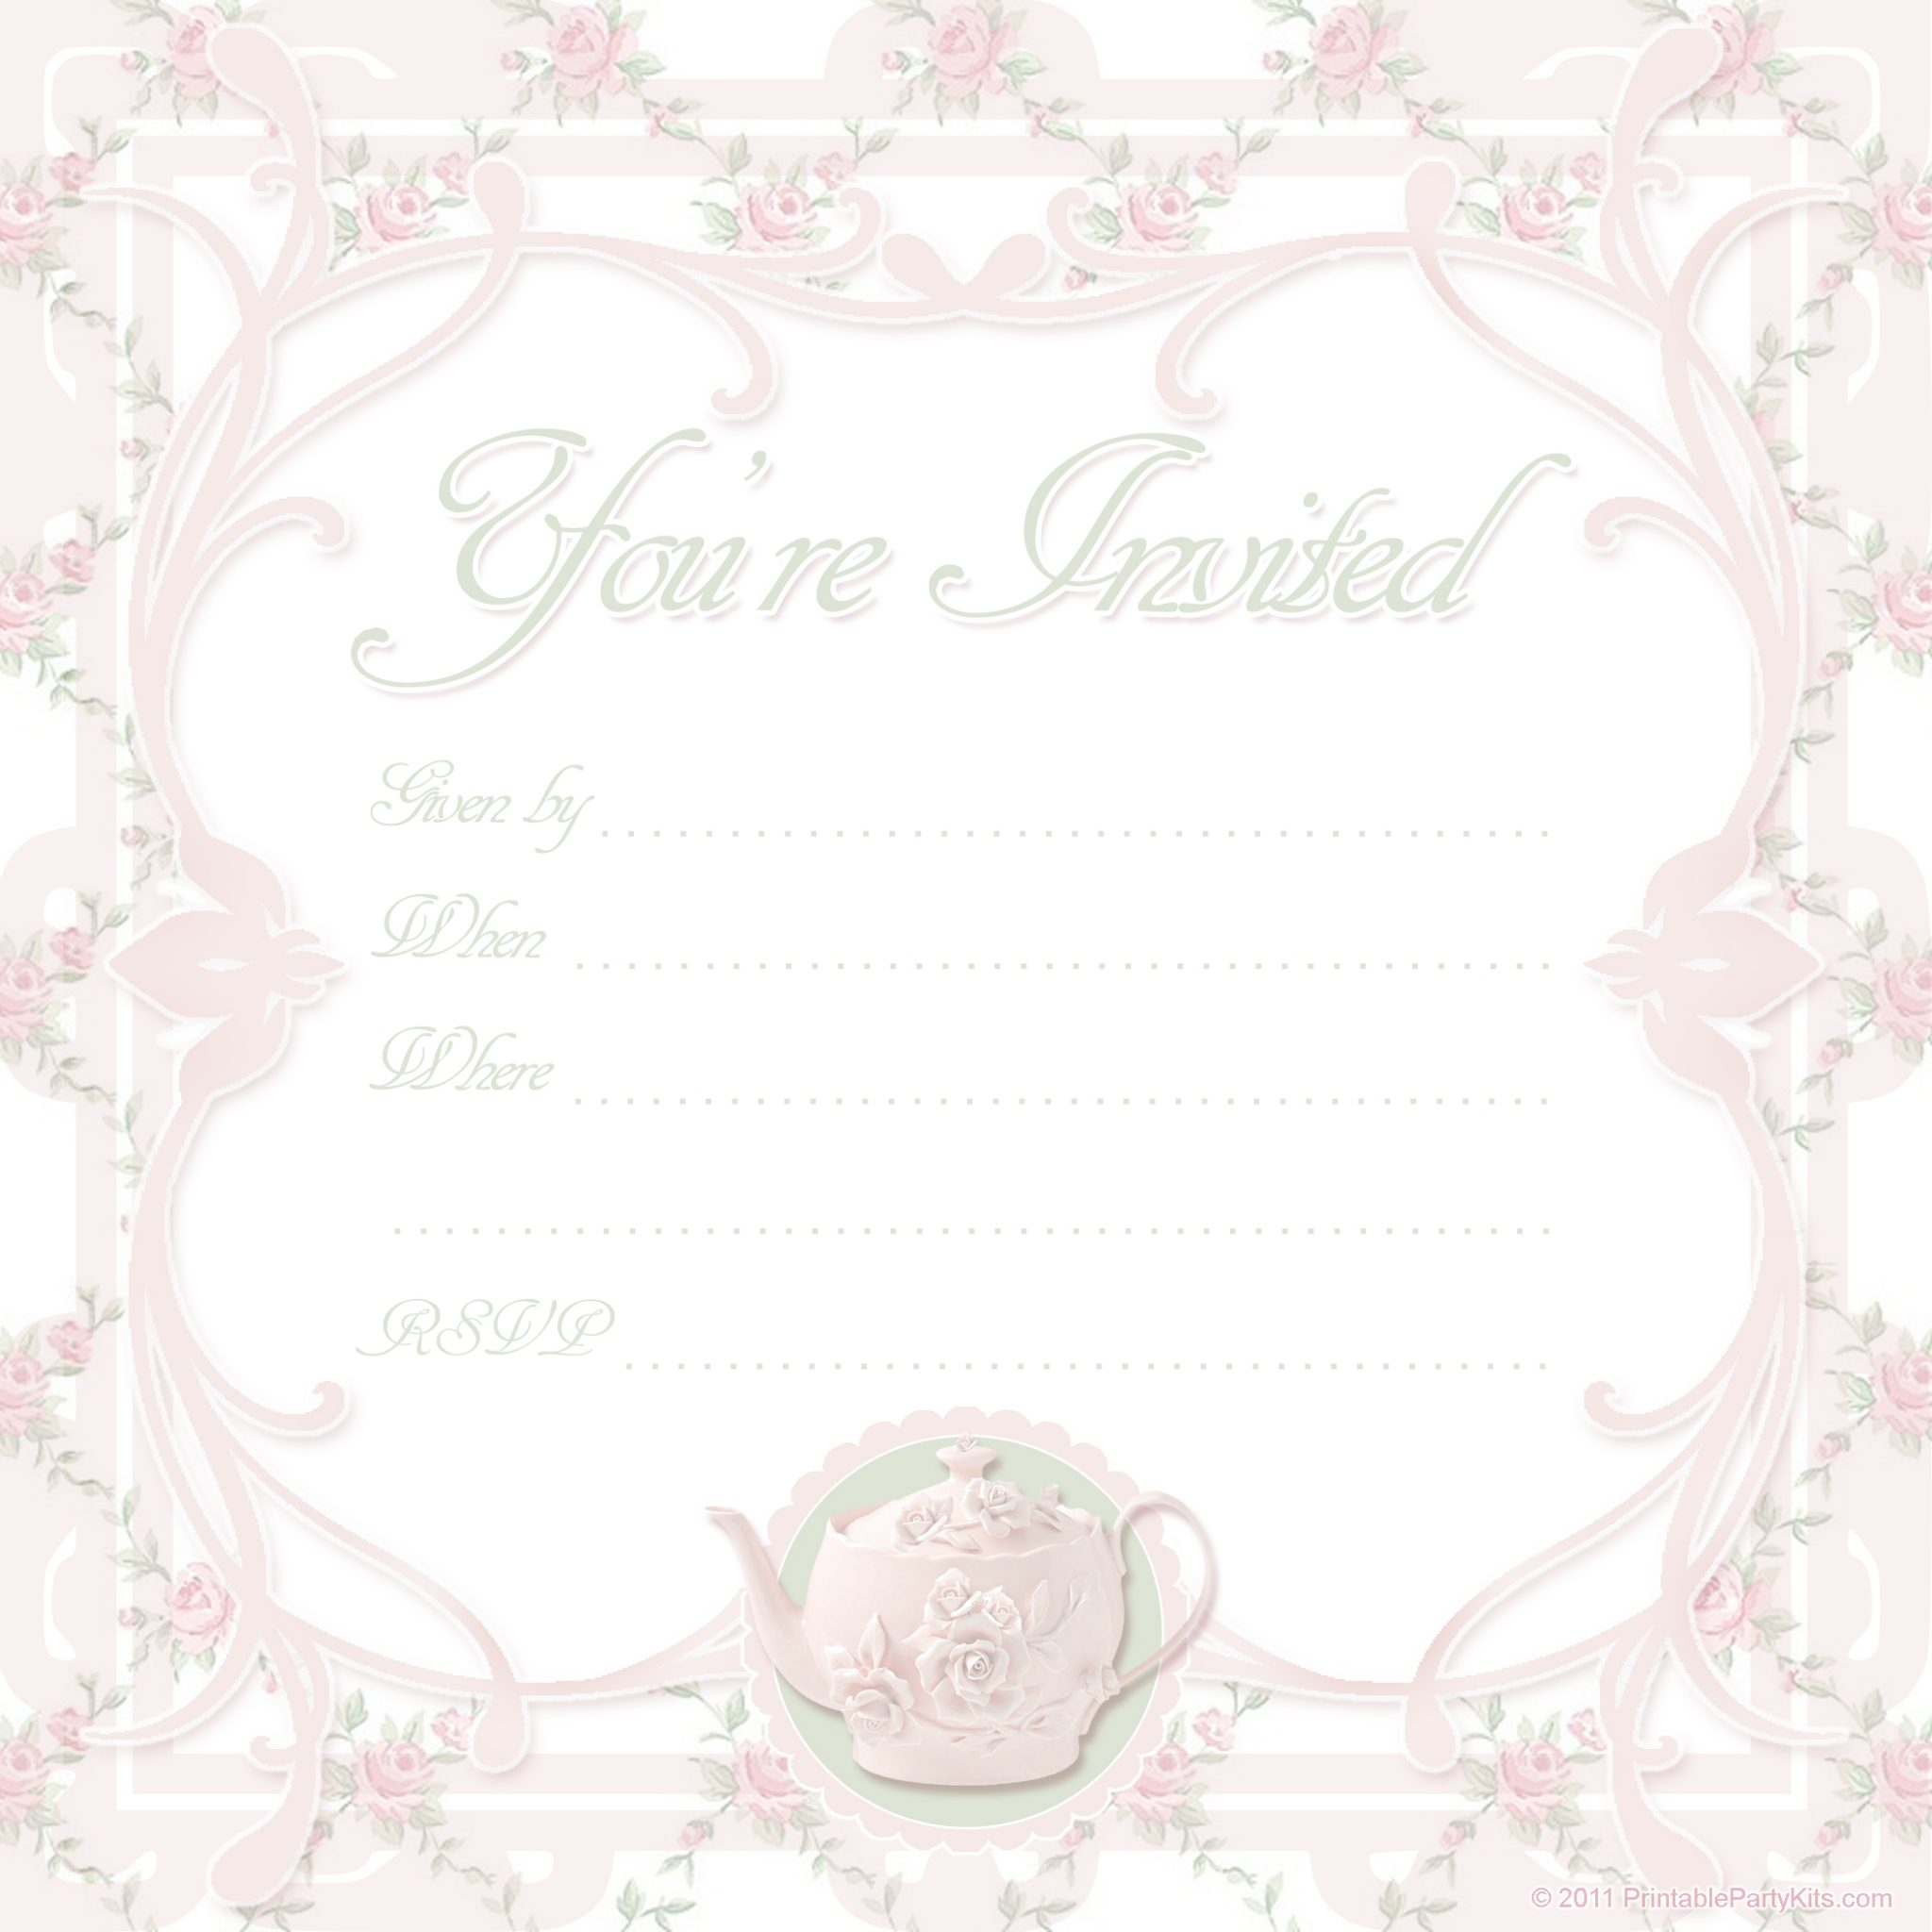 Baby Shower Invites Online Free with nice invitations design